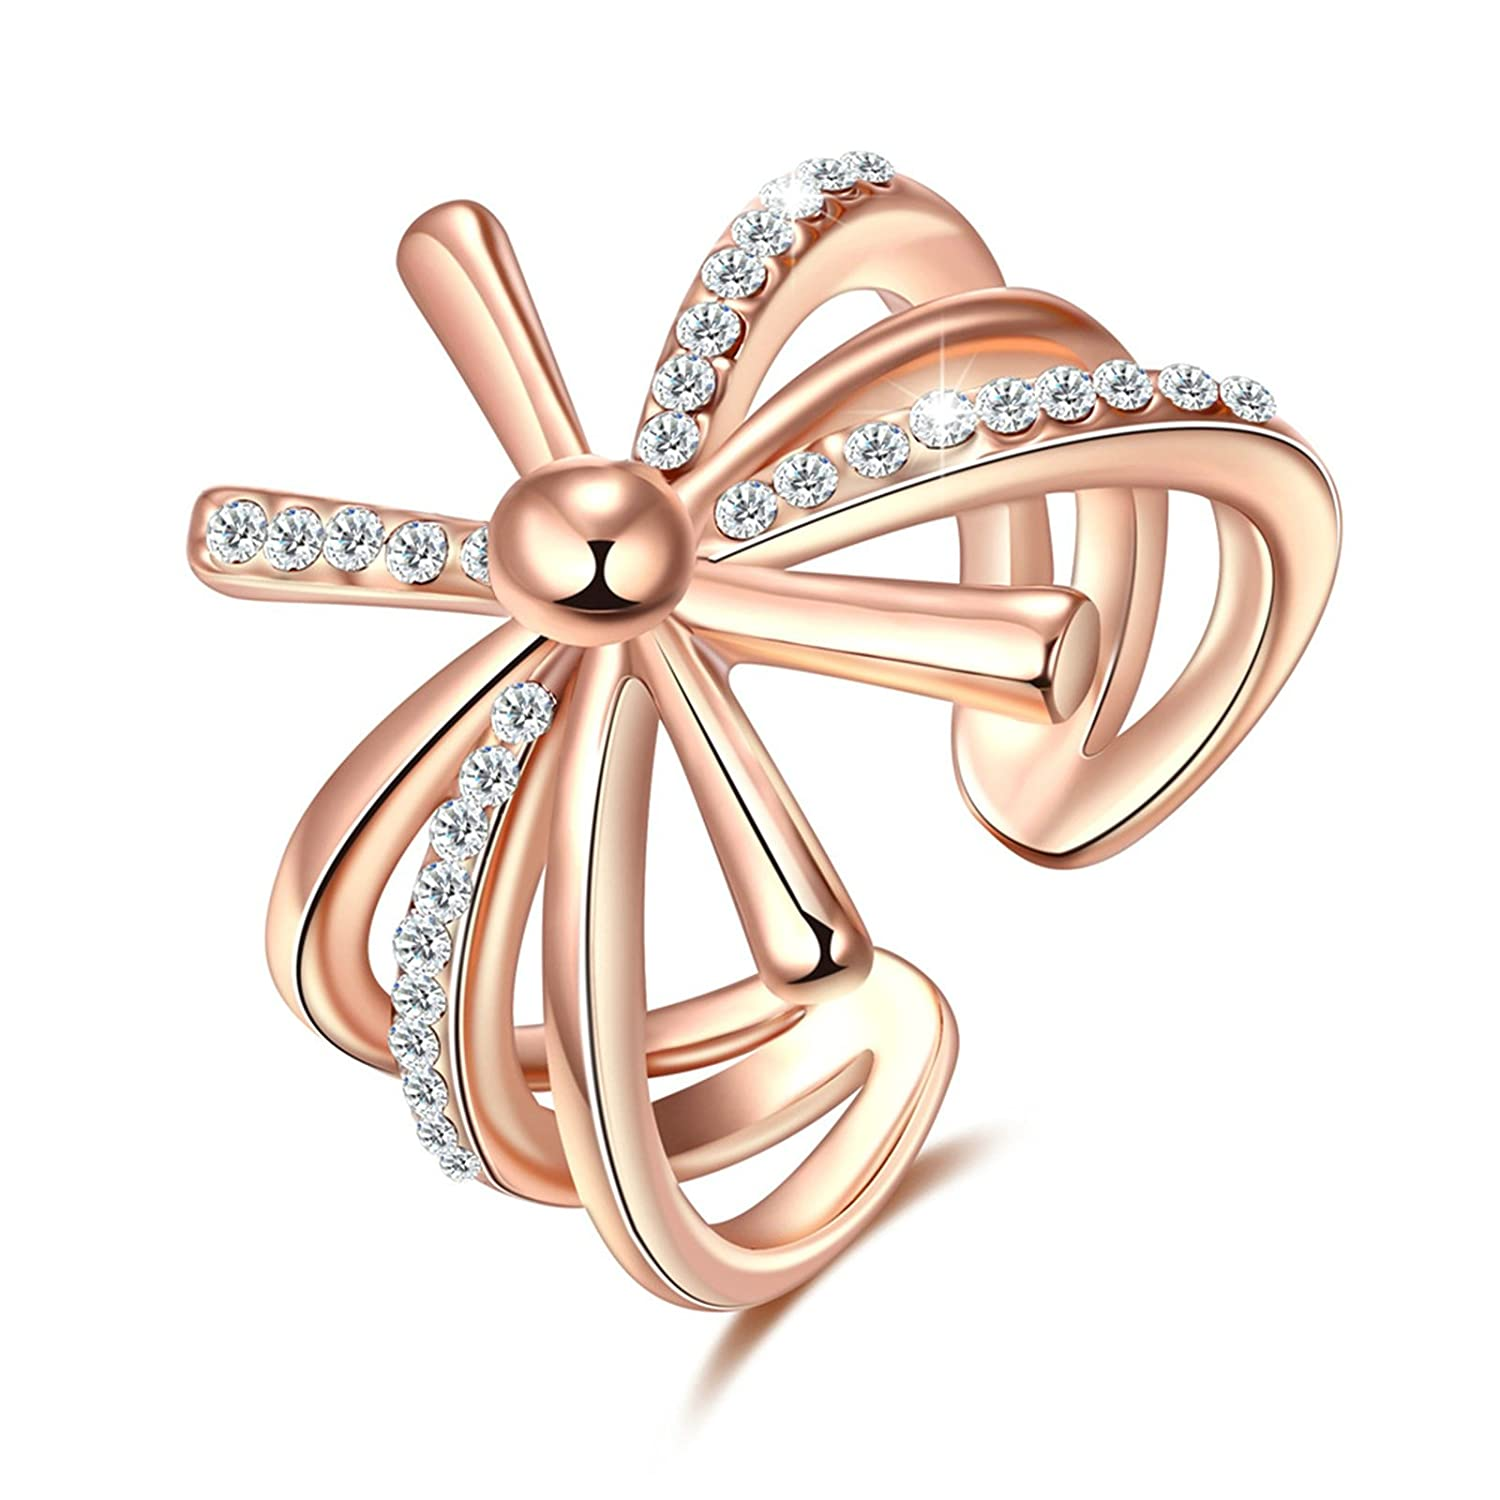 Epinki Rose Gold Plated Women Ring Sunflower Solitaire Ring White Cubic Zirconia